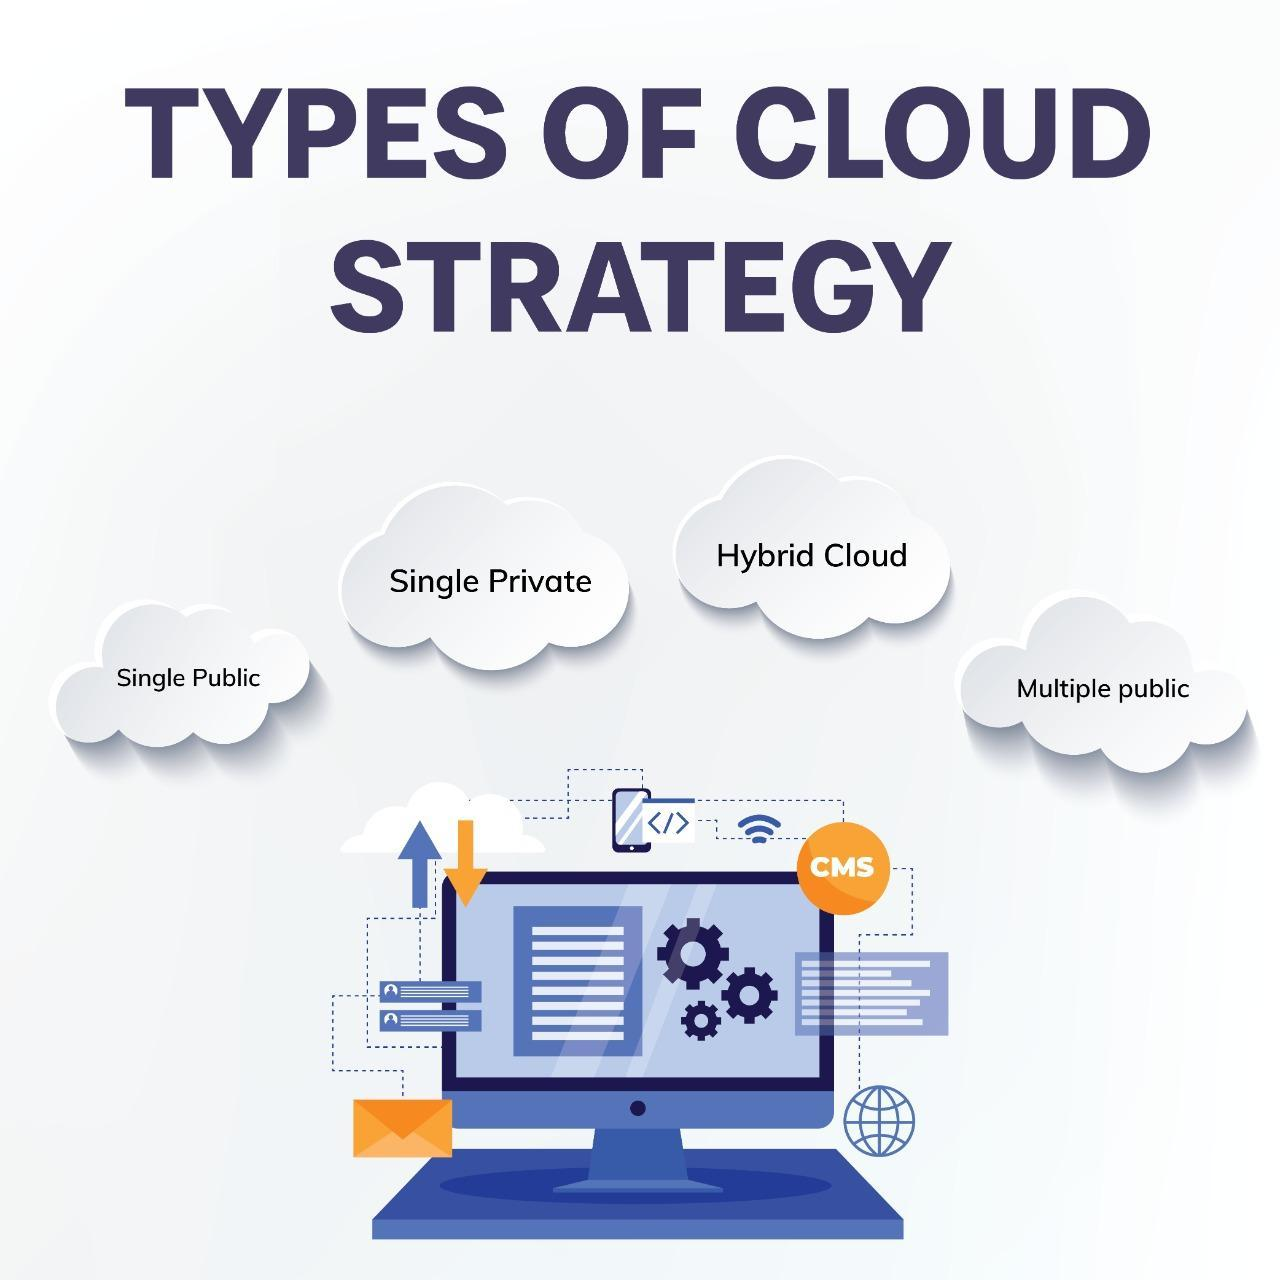 Types of Cloud strategy